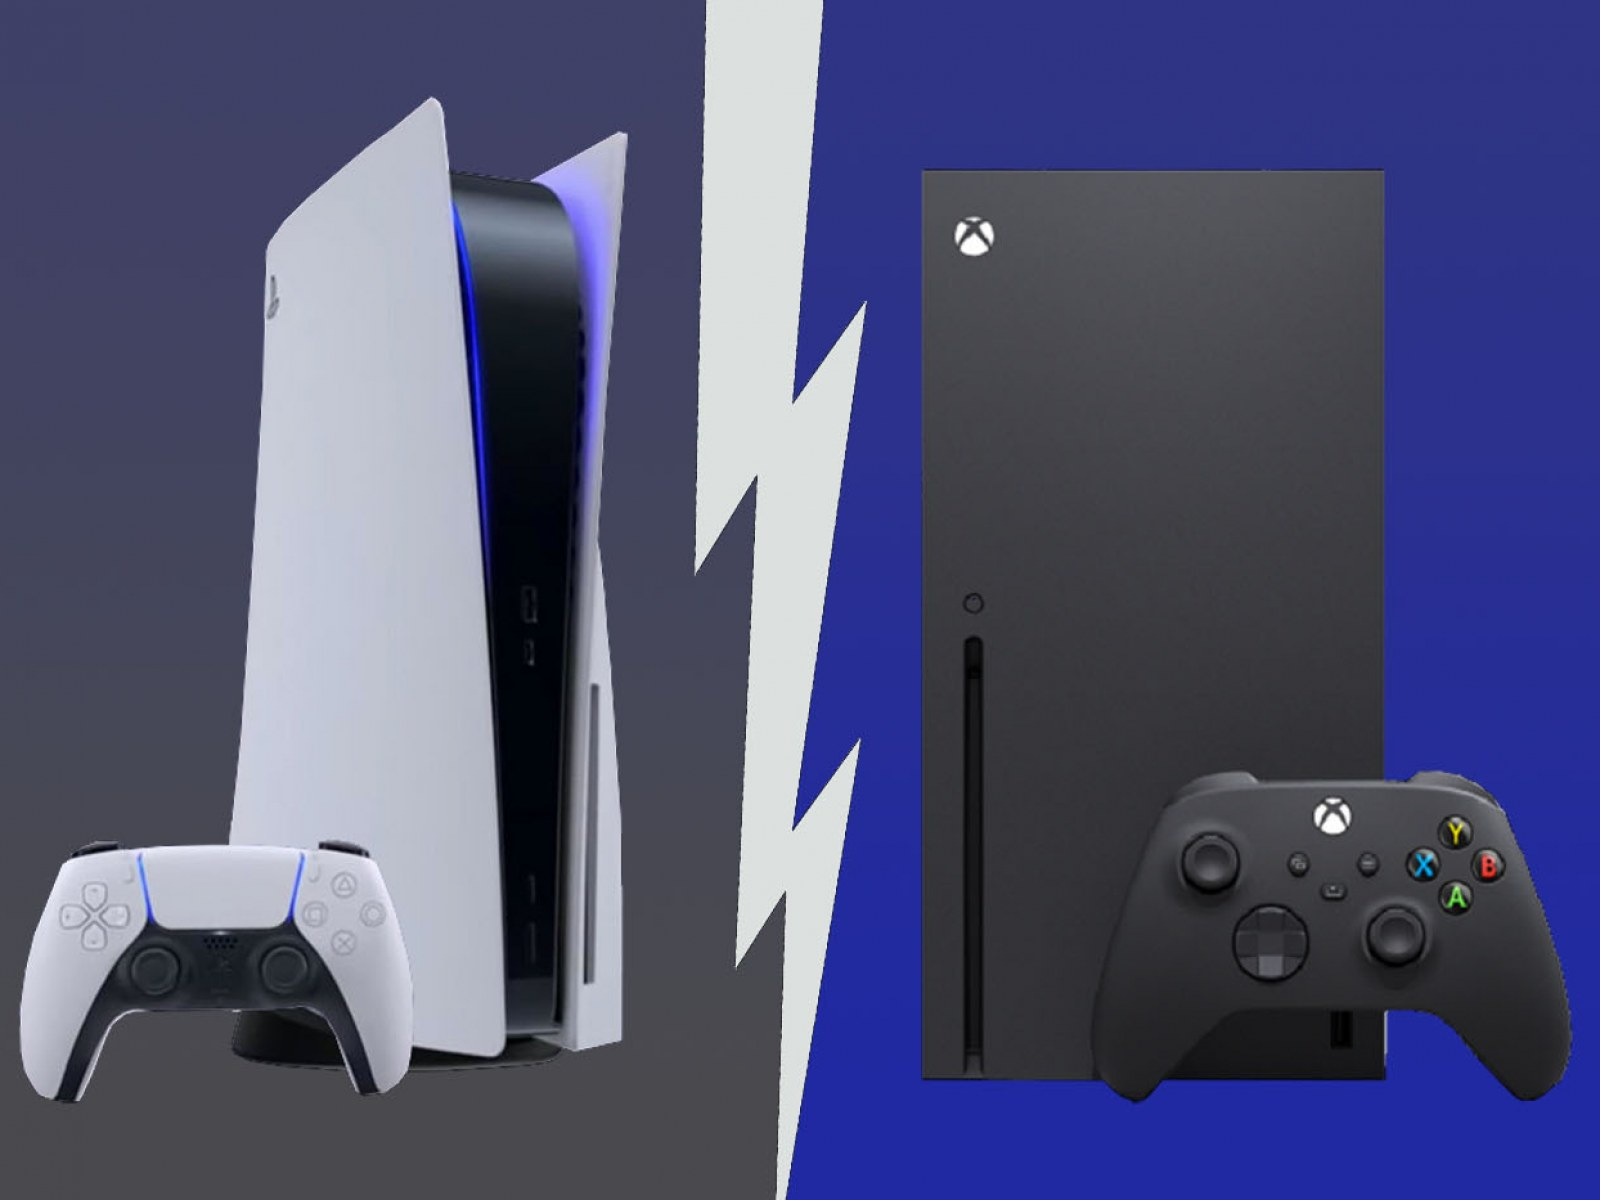 Ikea Created Model Ps5 Xbox Series X Consoles To Help Gamers Figure Out Storage Solutions